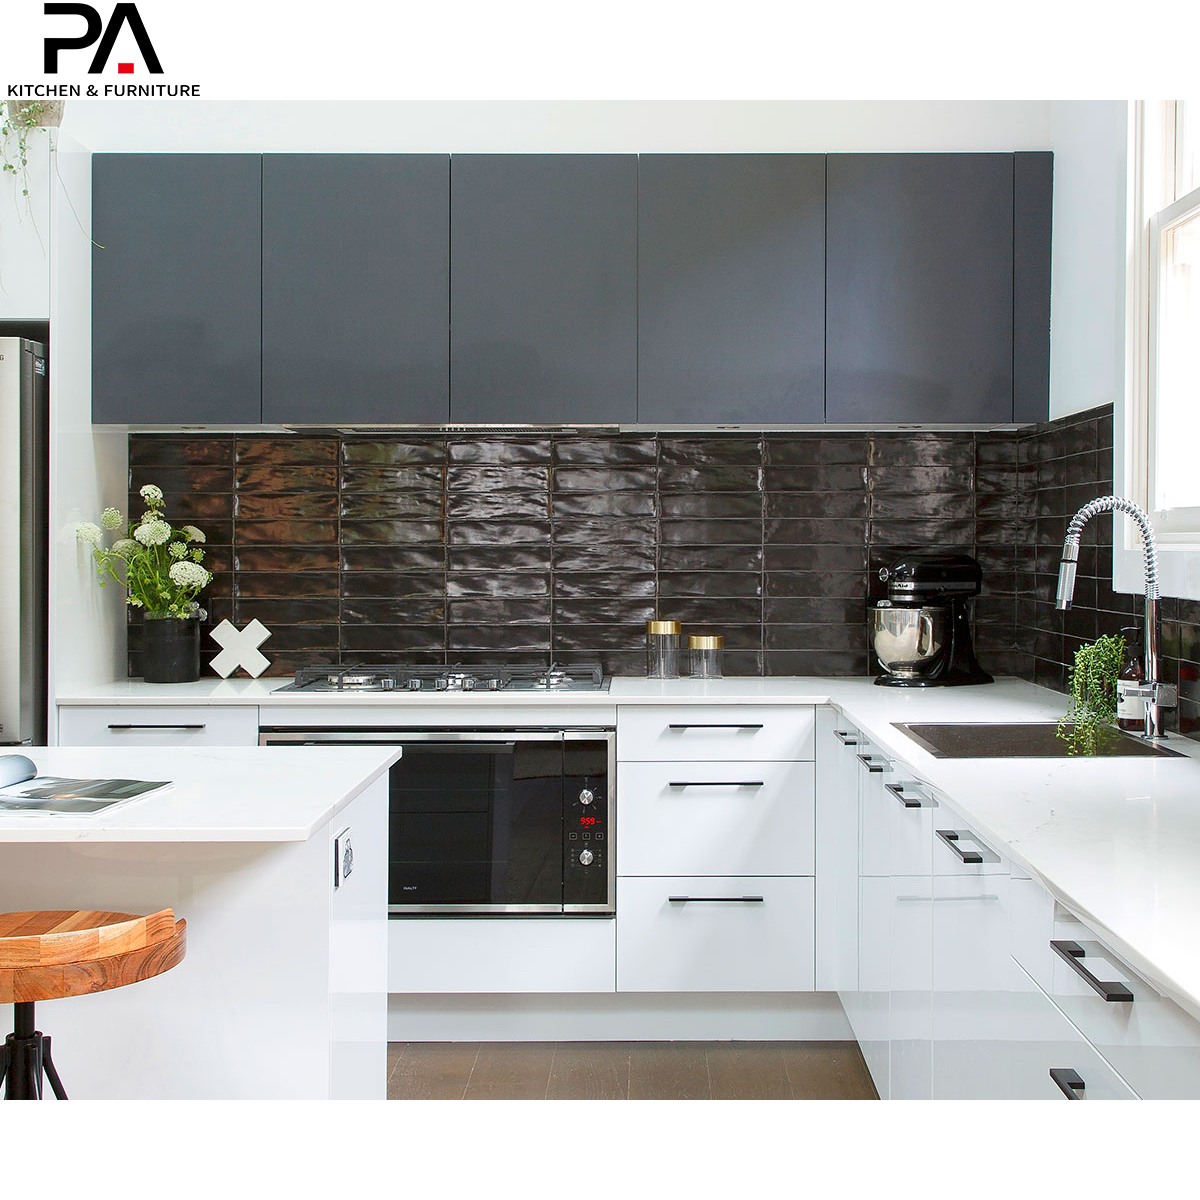 Customized Foshan Manufacturers Modern Modular White High Gloss Lacquer 2pac Poly Kitchen Cabinet View High Gloss Lacquer Kitchen Cabinet Doors Pa